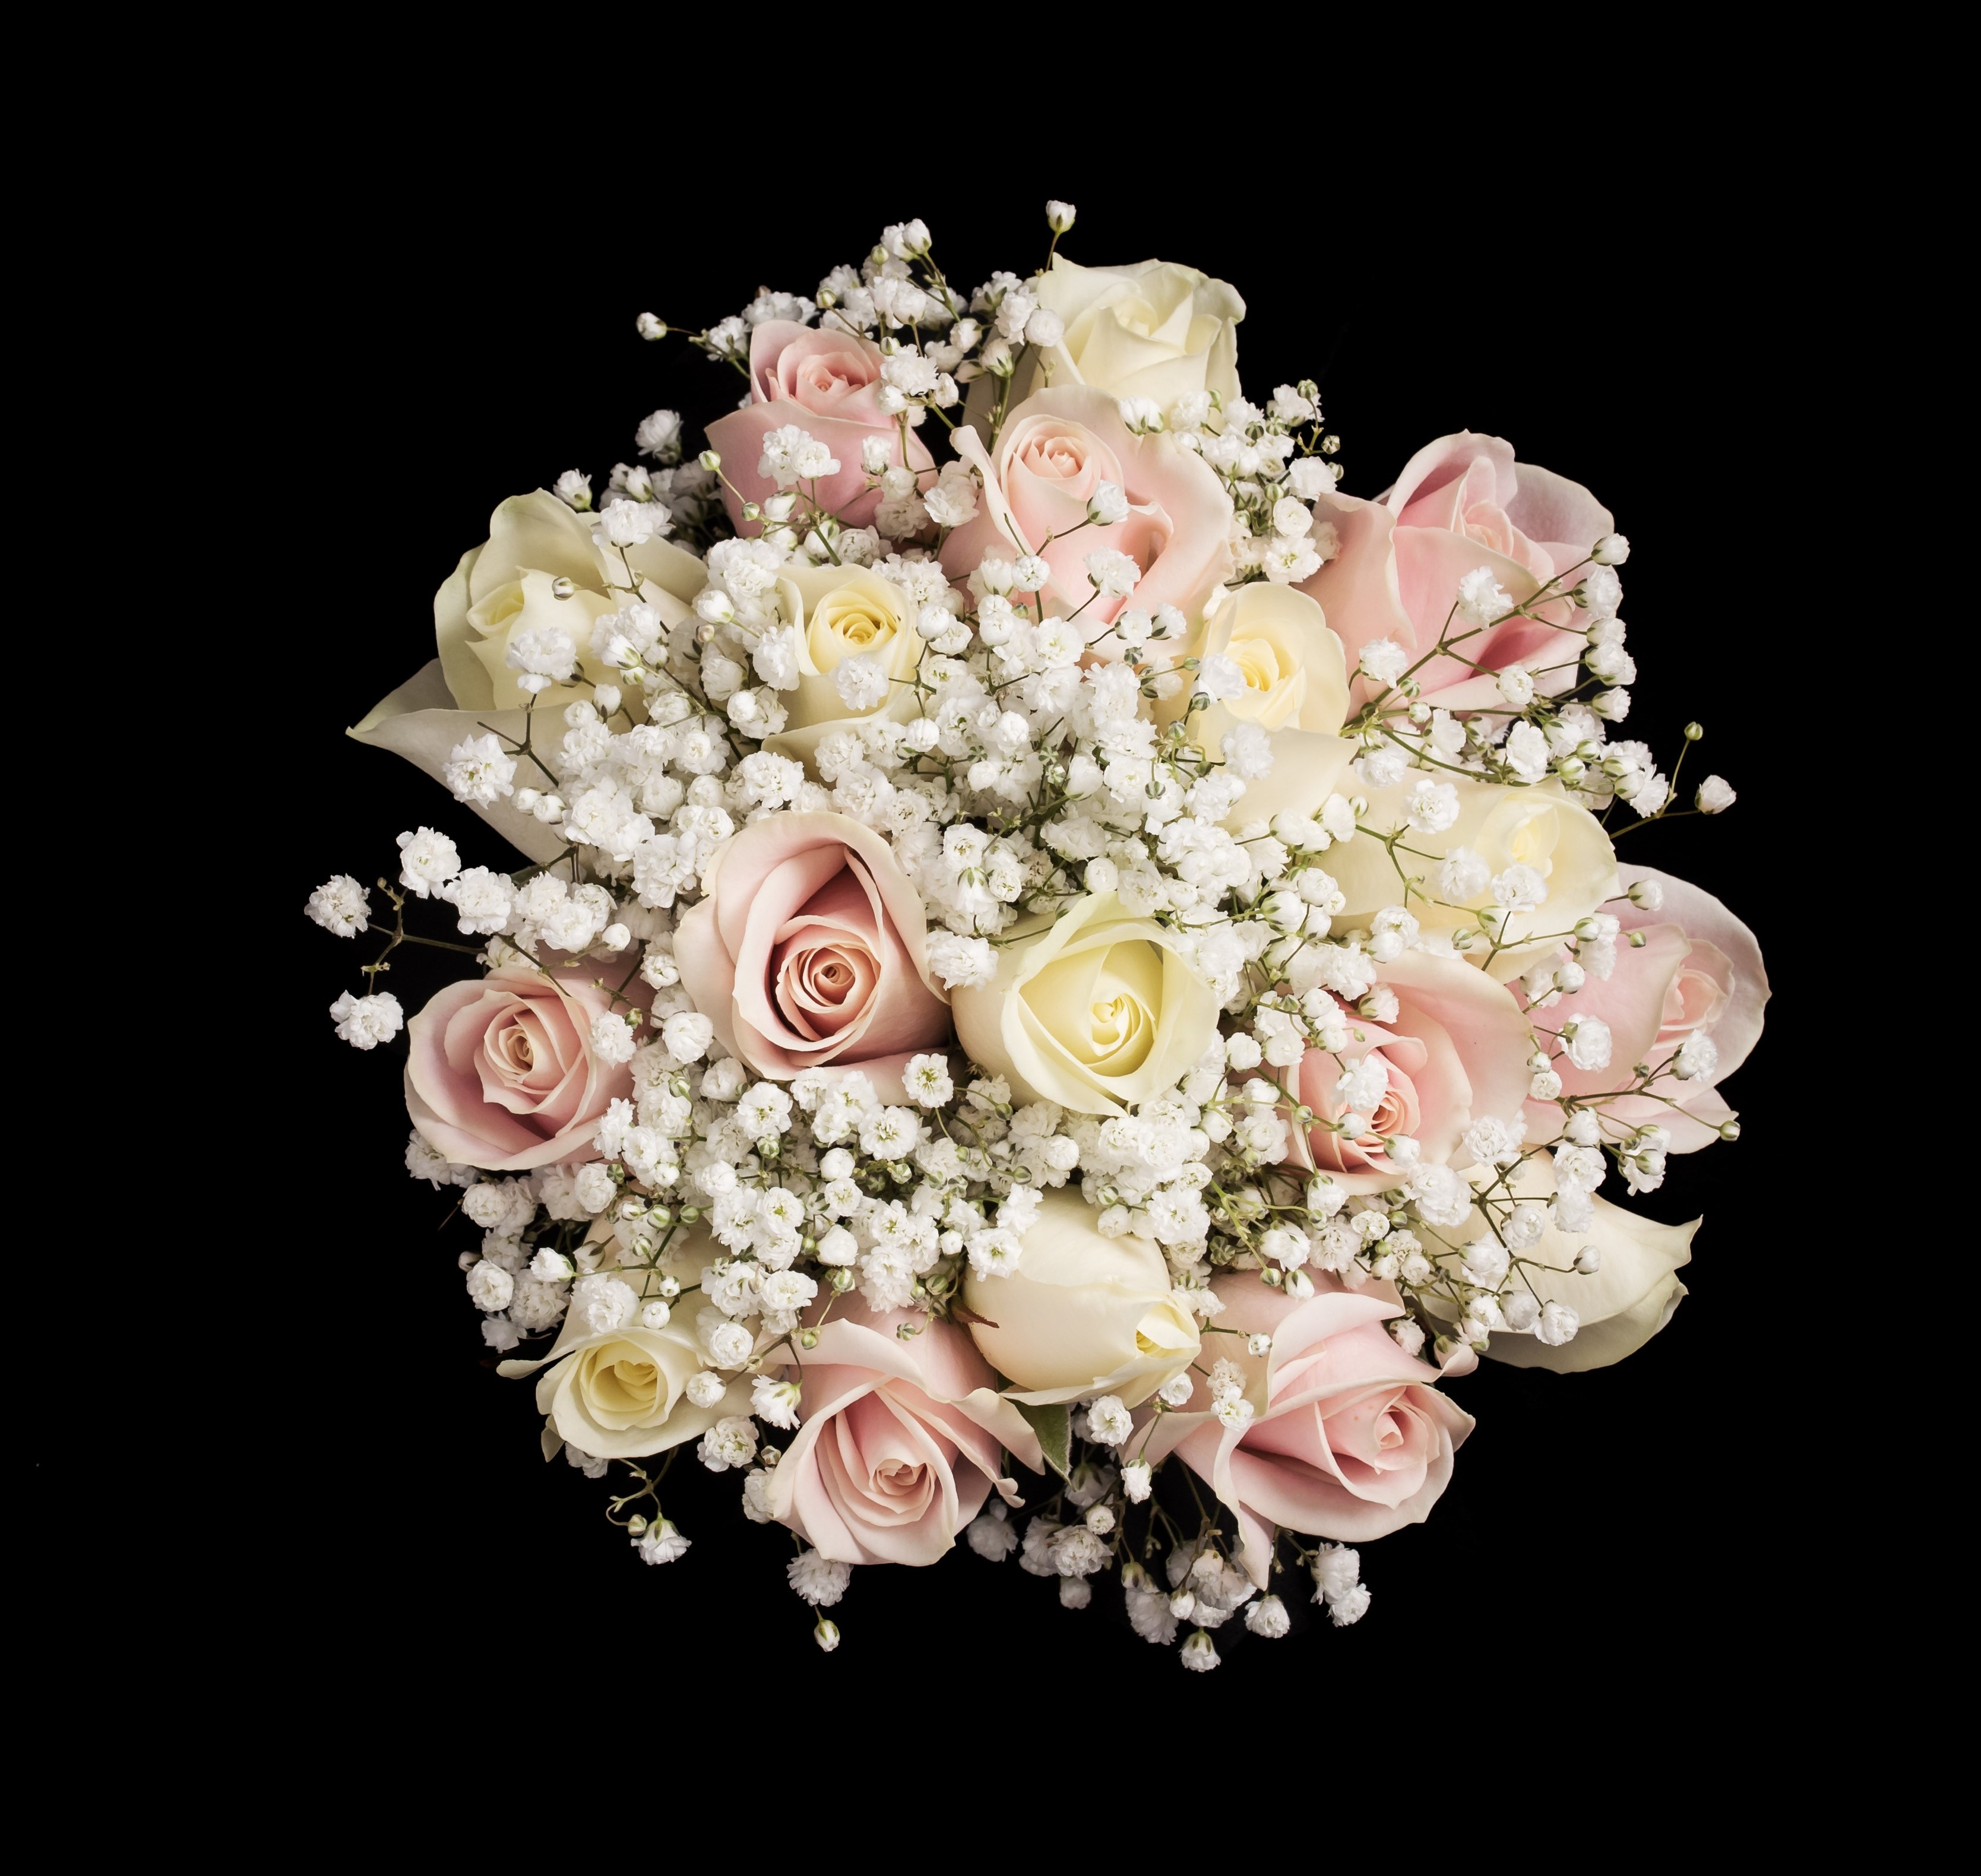 pink & ivory roses with gypsophila Gorcott Hall